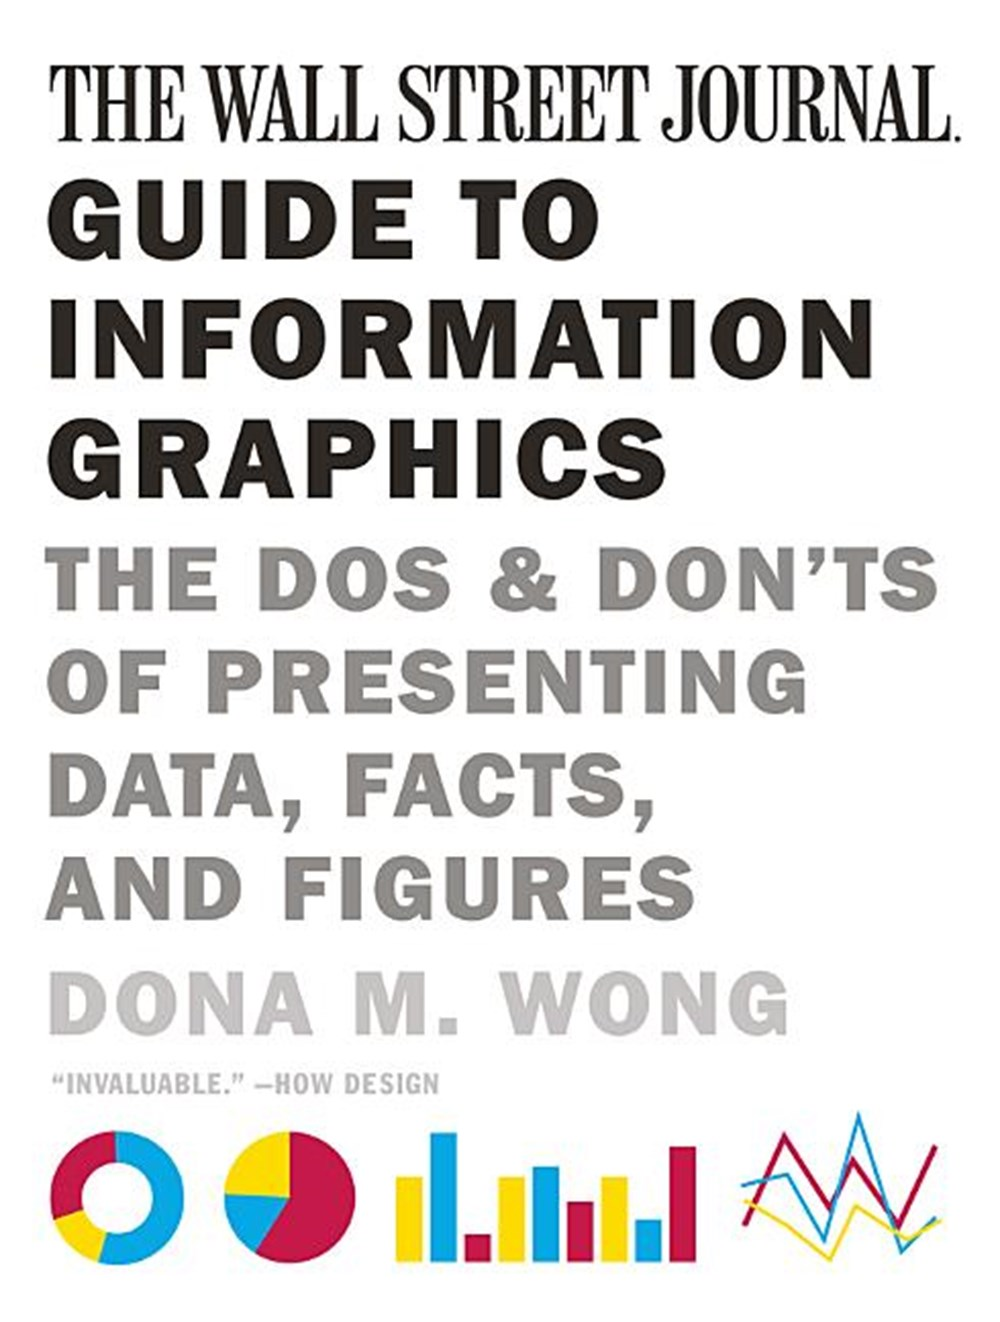 Wall Street Journal Guide to Information Graphics The Dos and Don'ts of Presenting Data, Facts, and